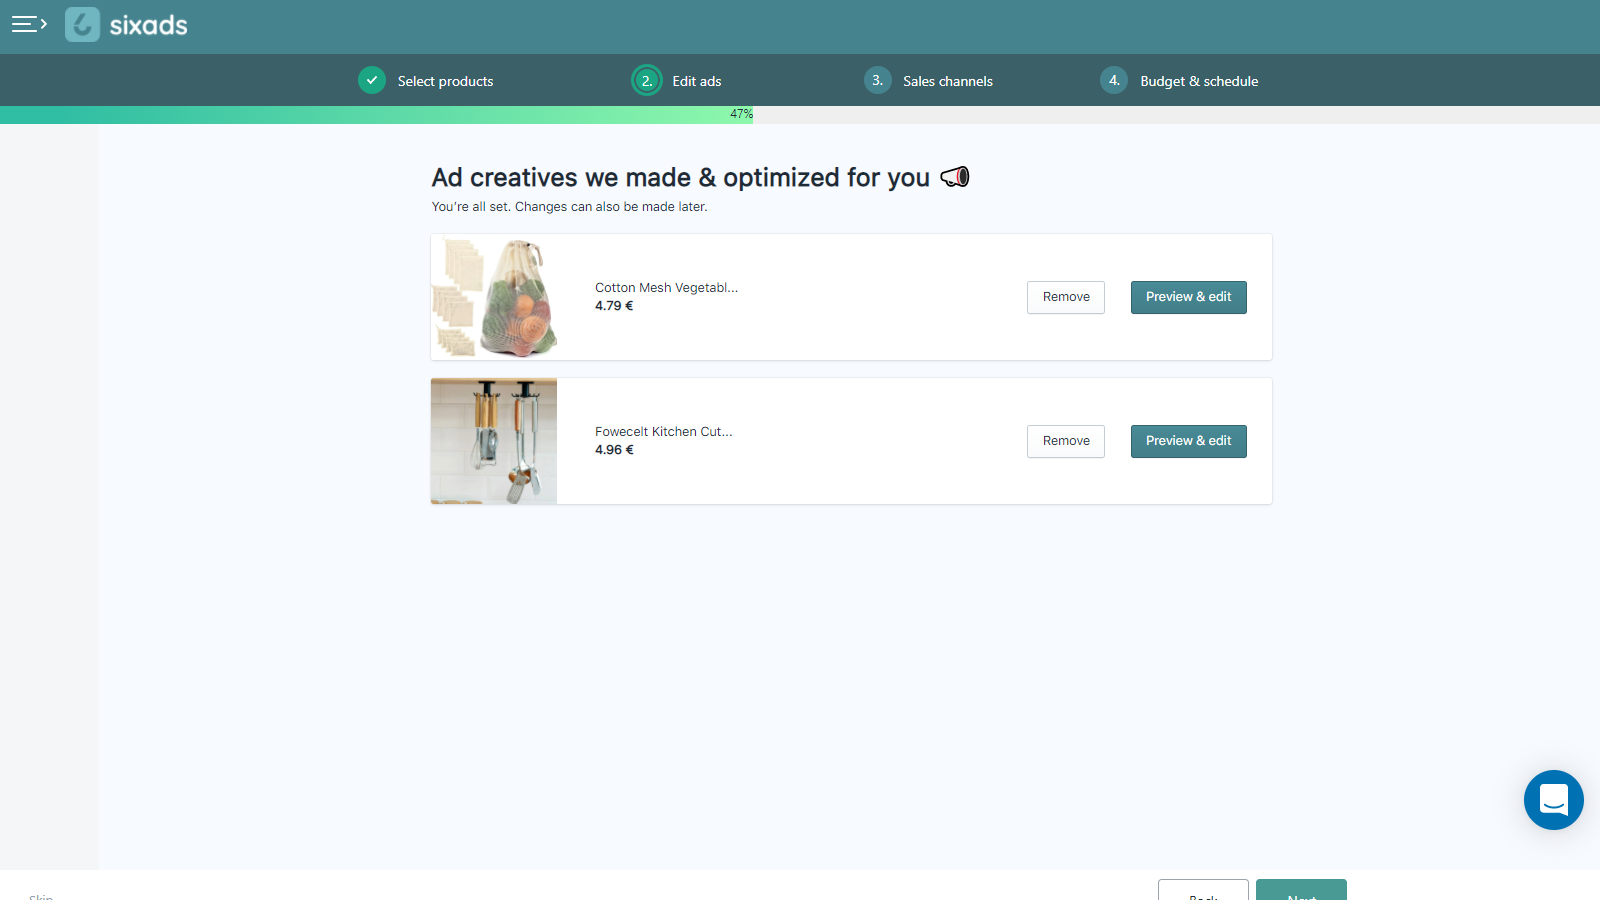 Confirm ad creatives for ads on Facebook, Instagram, Google